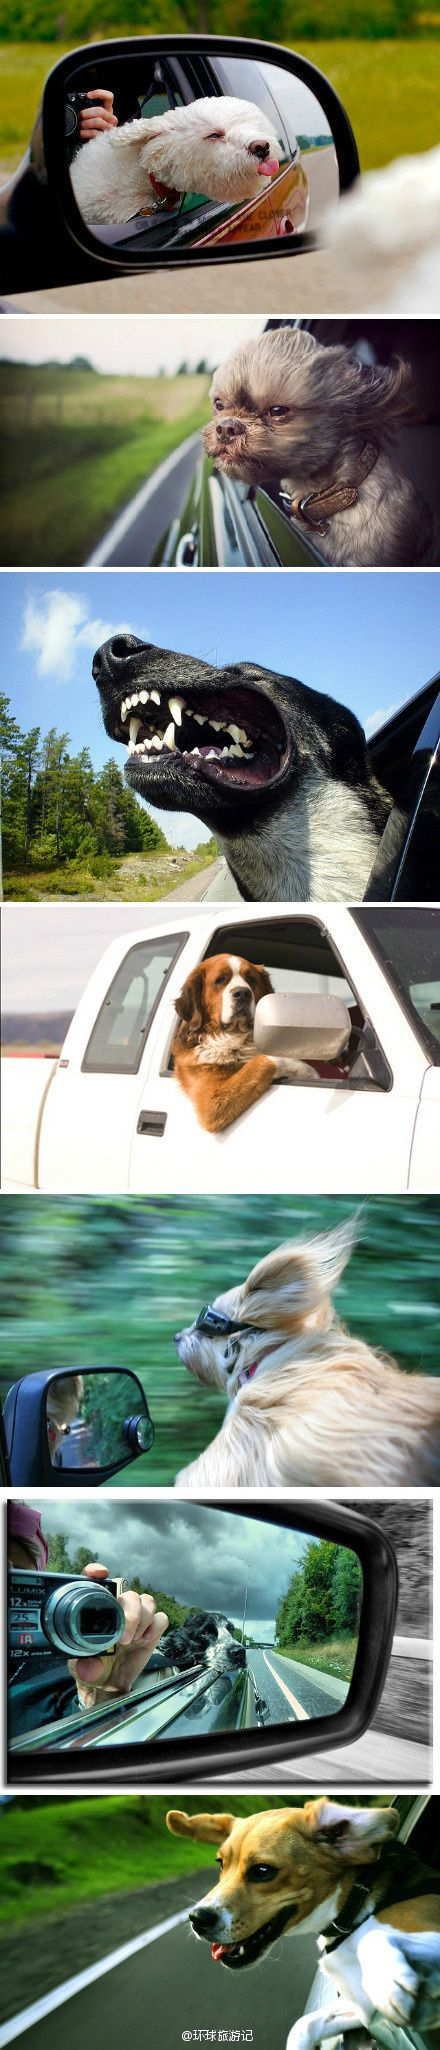 Dog's love the car rides, but remember for there safety, don't let them hang there heads out.  This is harmful to not only their eyes, but a accident waiting to happen.  A simple crack in the windows is plenty, and they'll love it just the same.